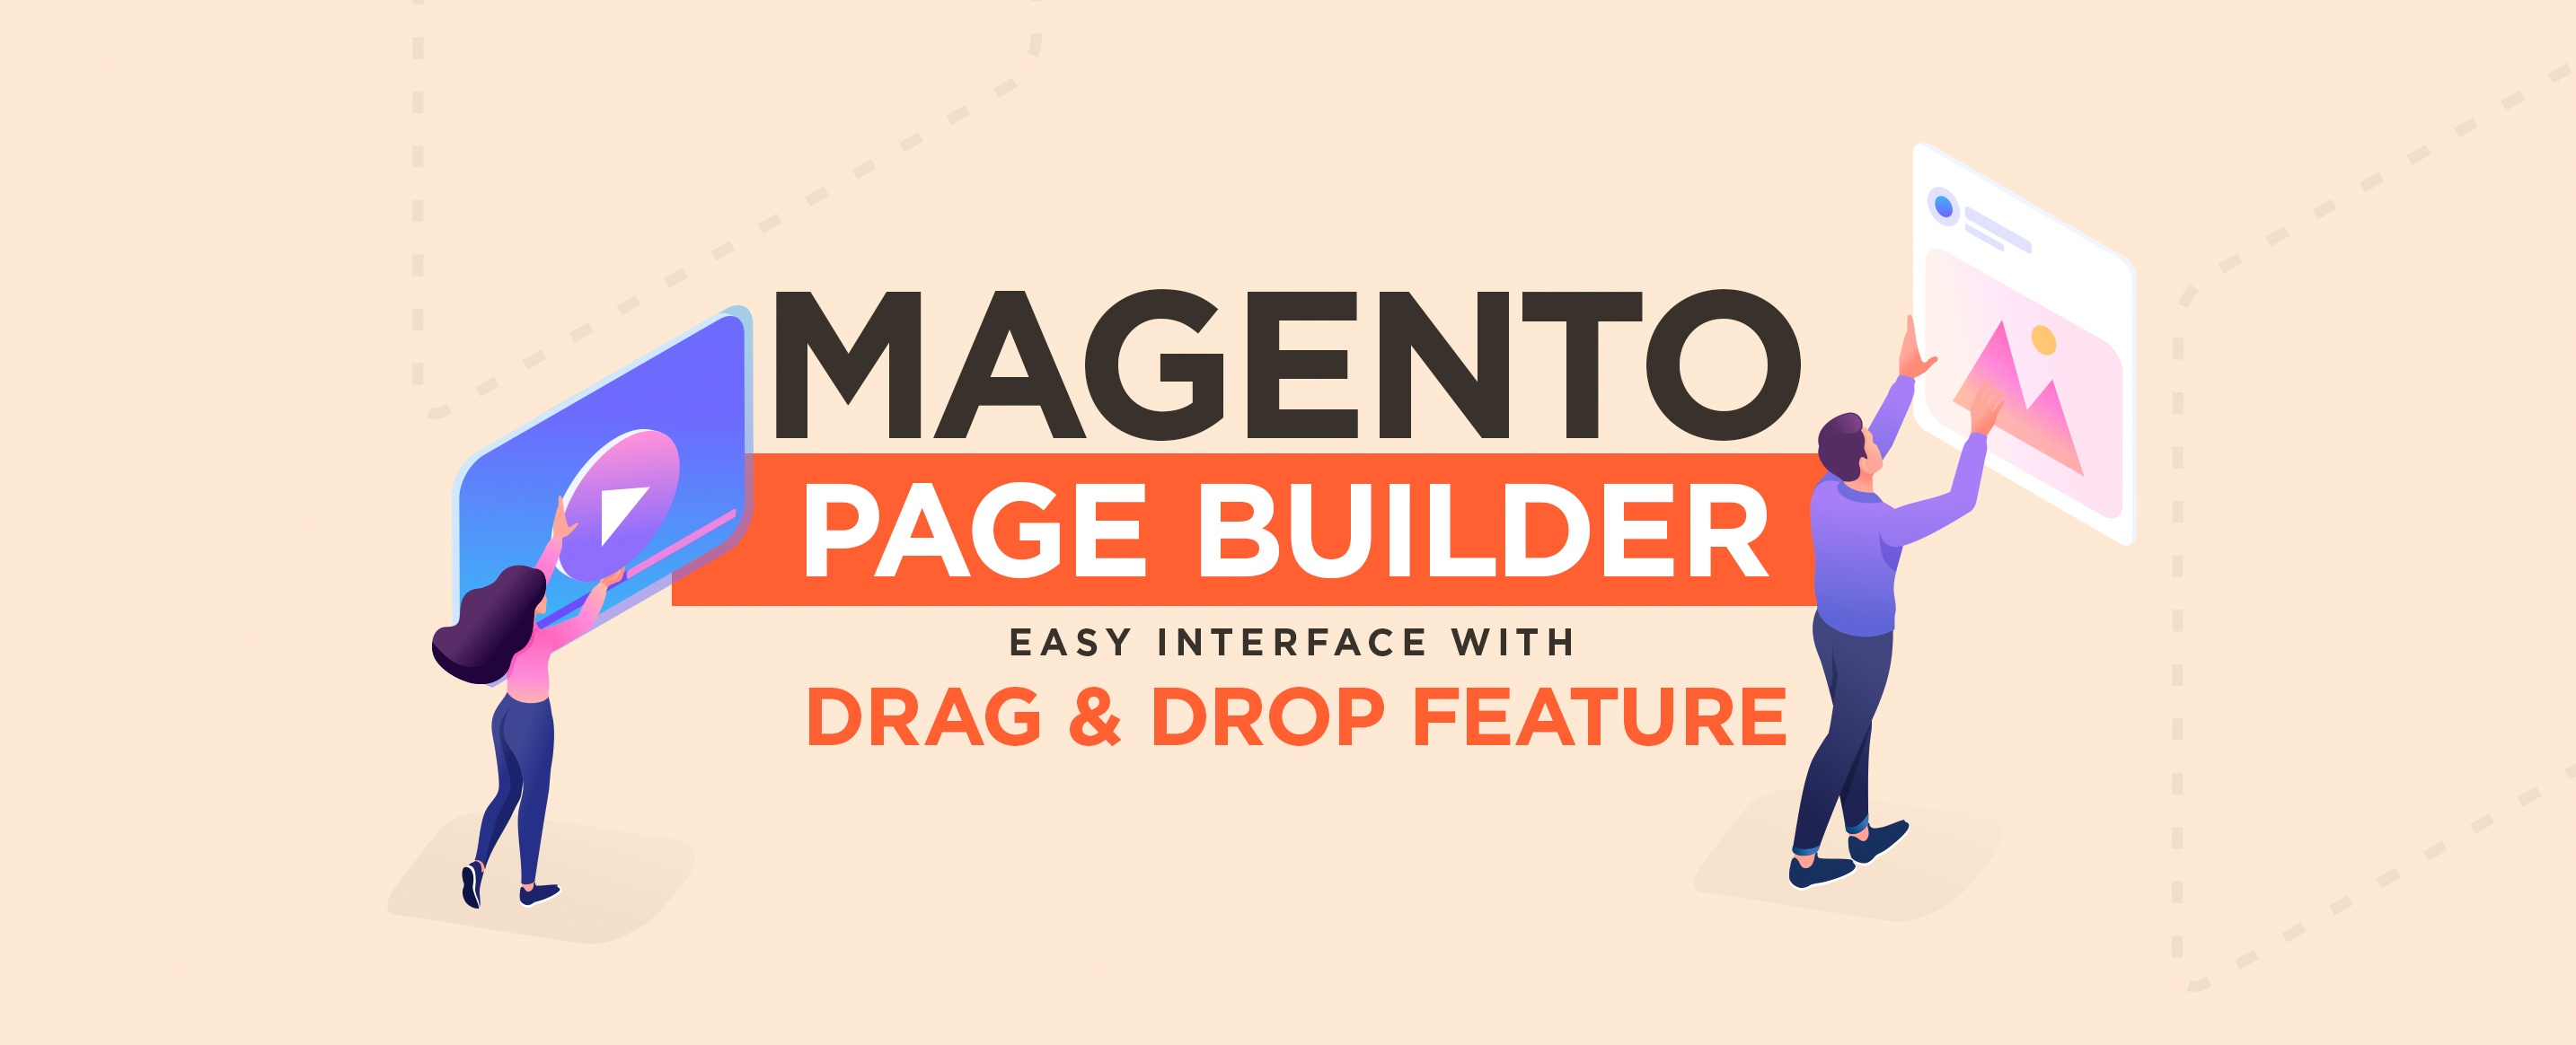 Magento-Page-Builder---Easy-Interface-with-Drag-&-Drop-Feature